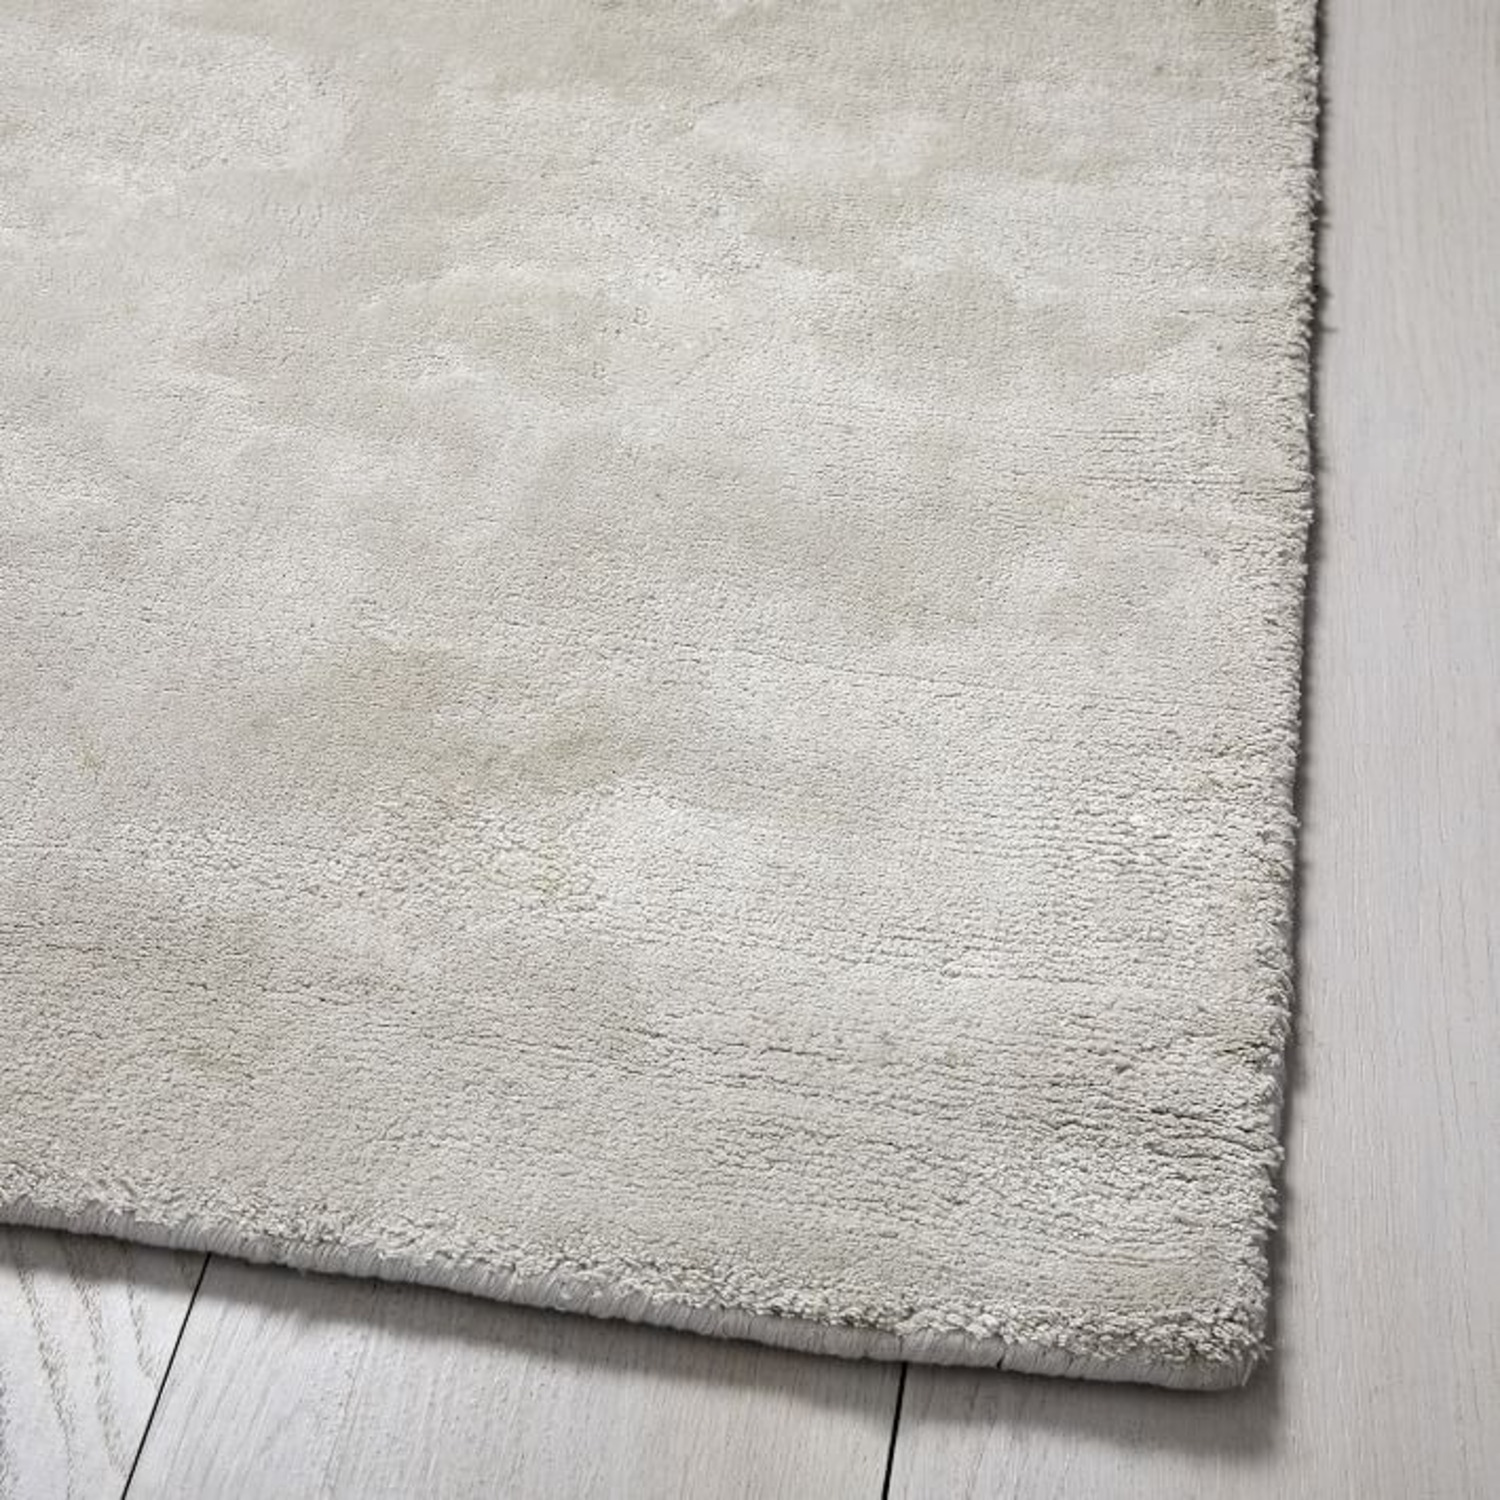 West Elm Lucent Rug, Frost Gray, 5'x8' - image-3